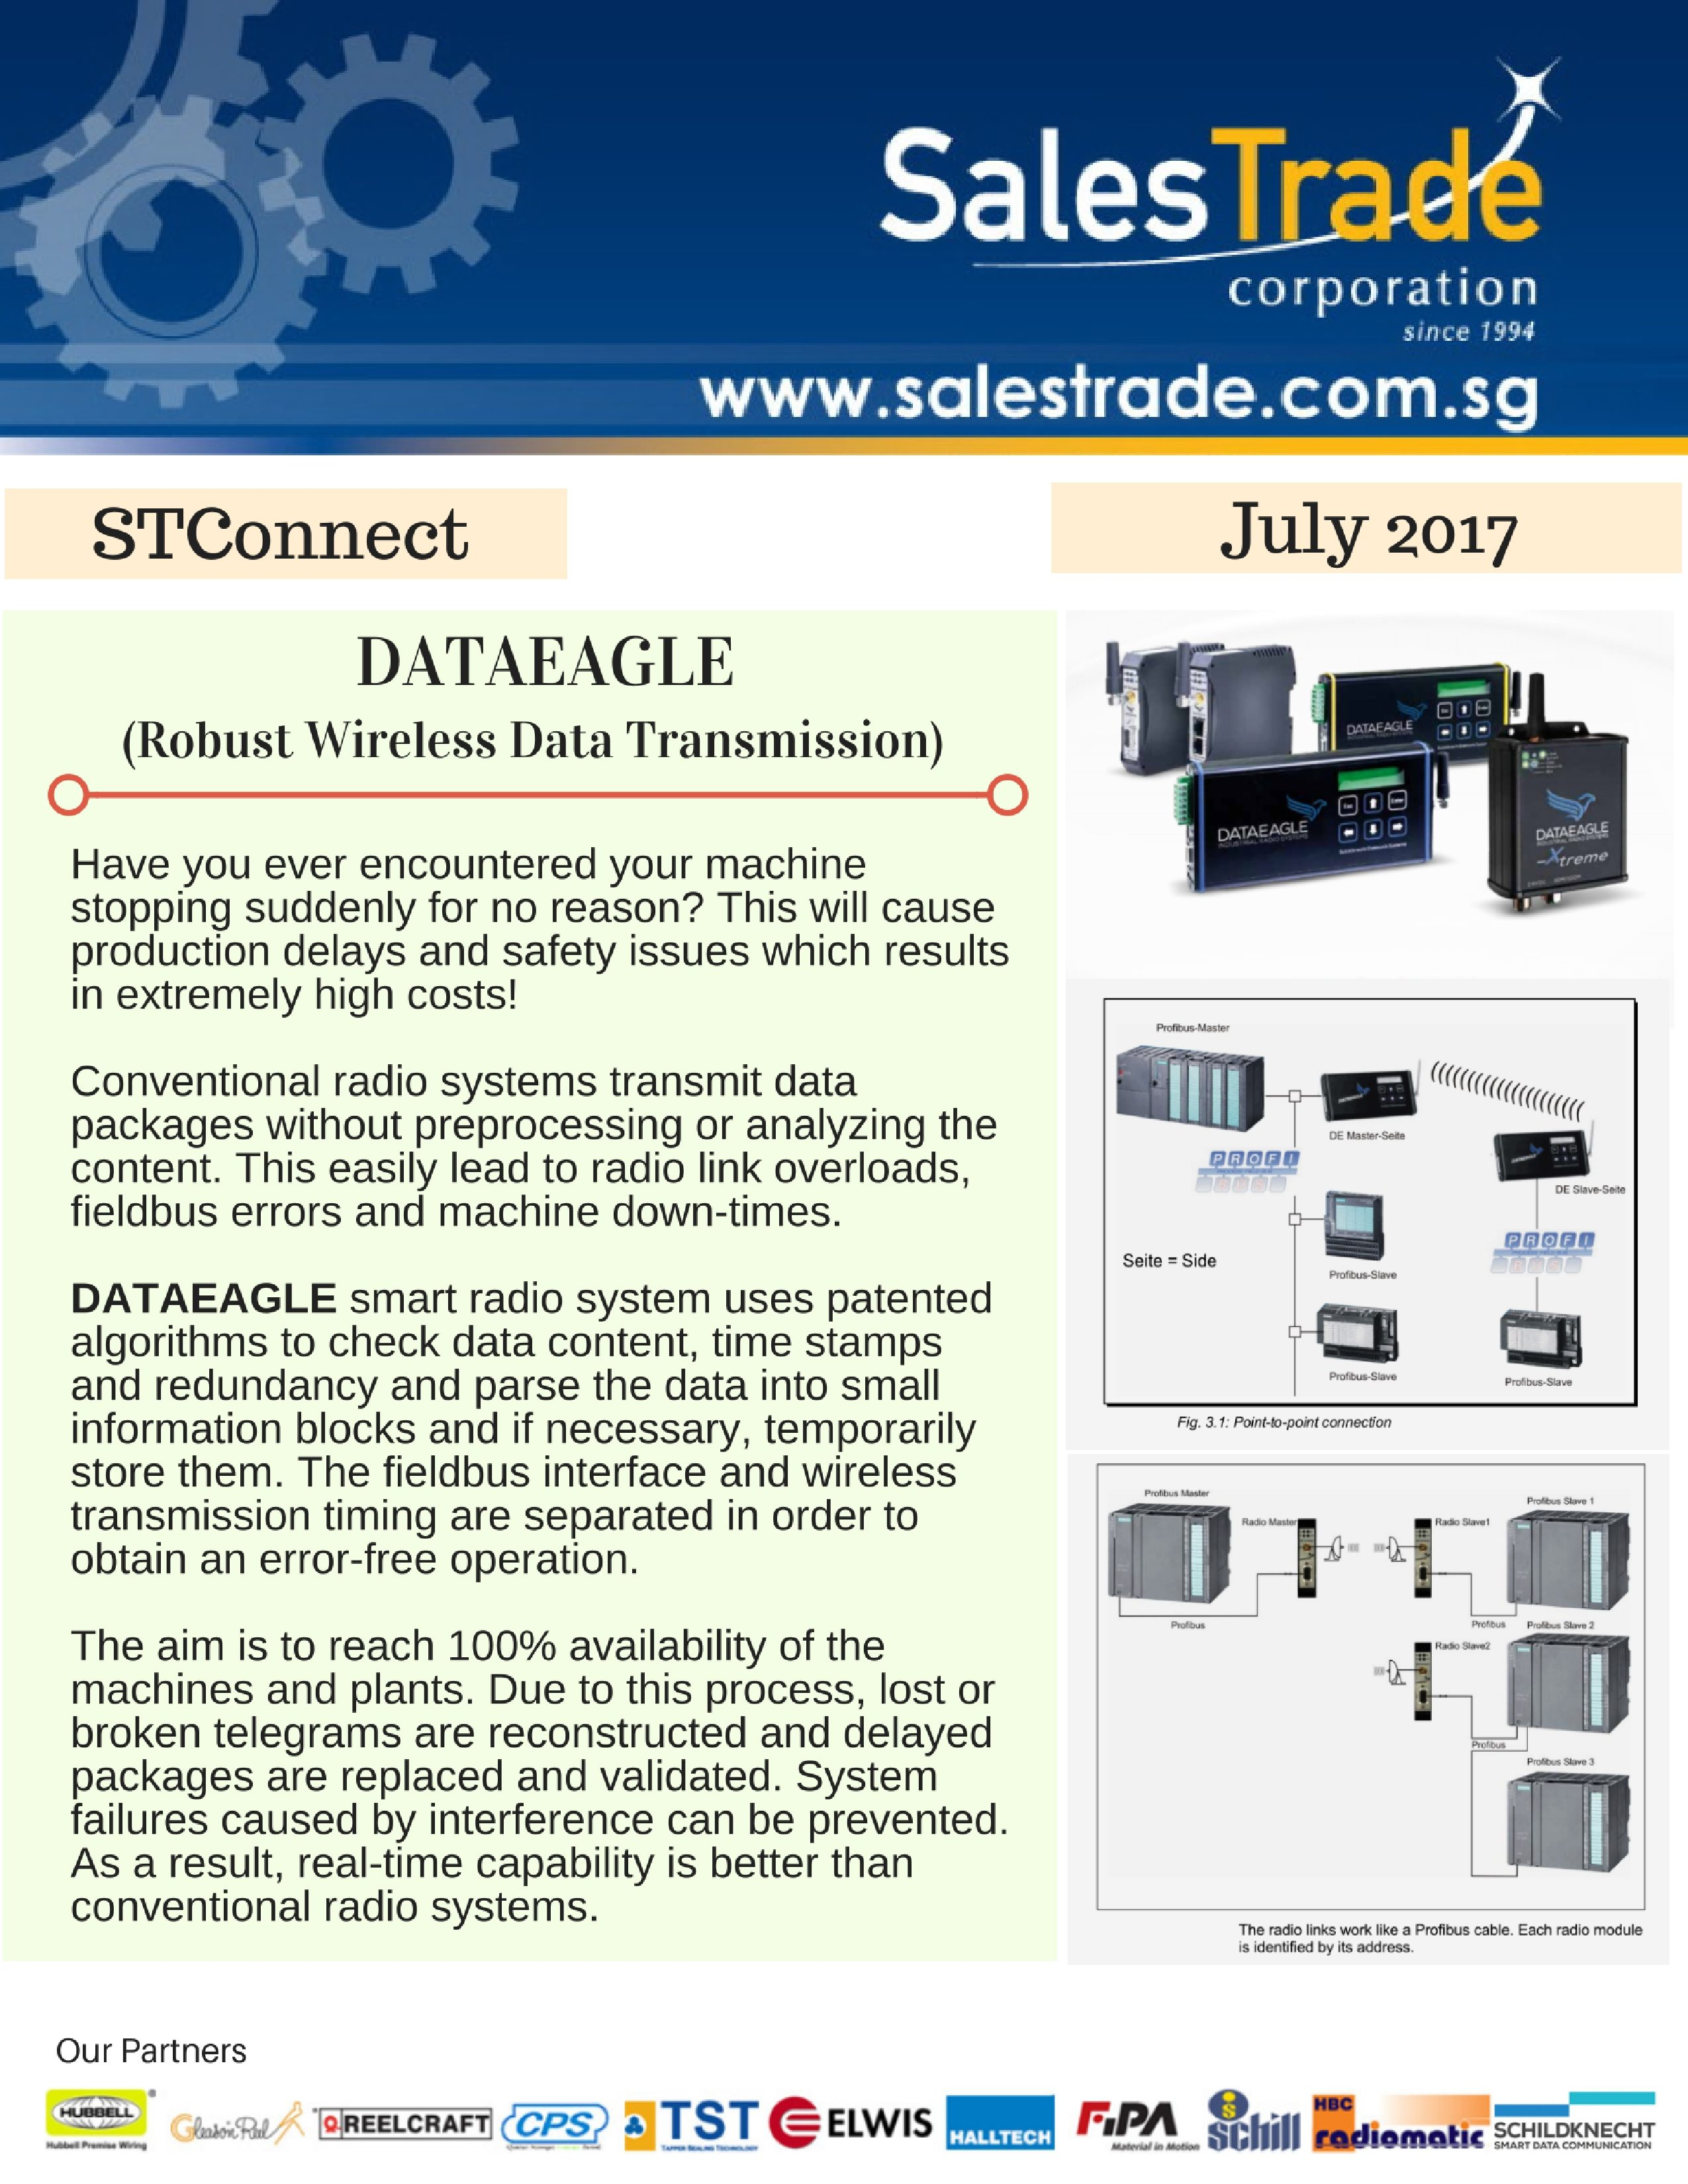 STConnect - July 2017